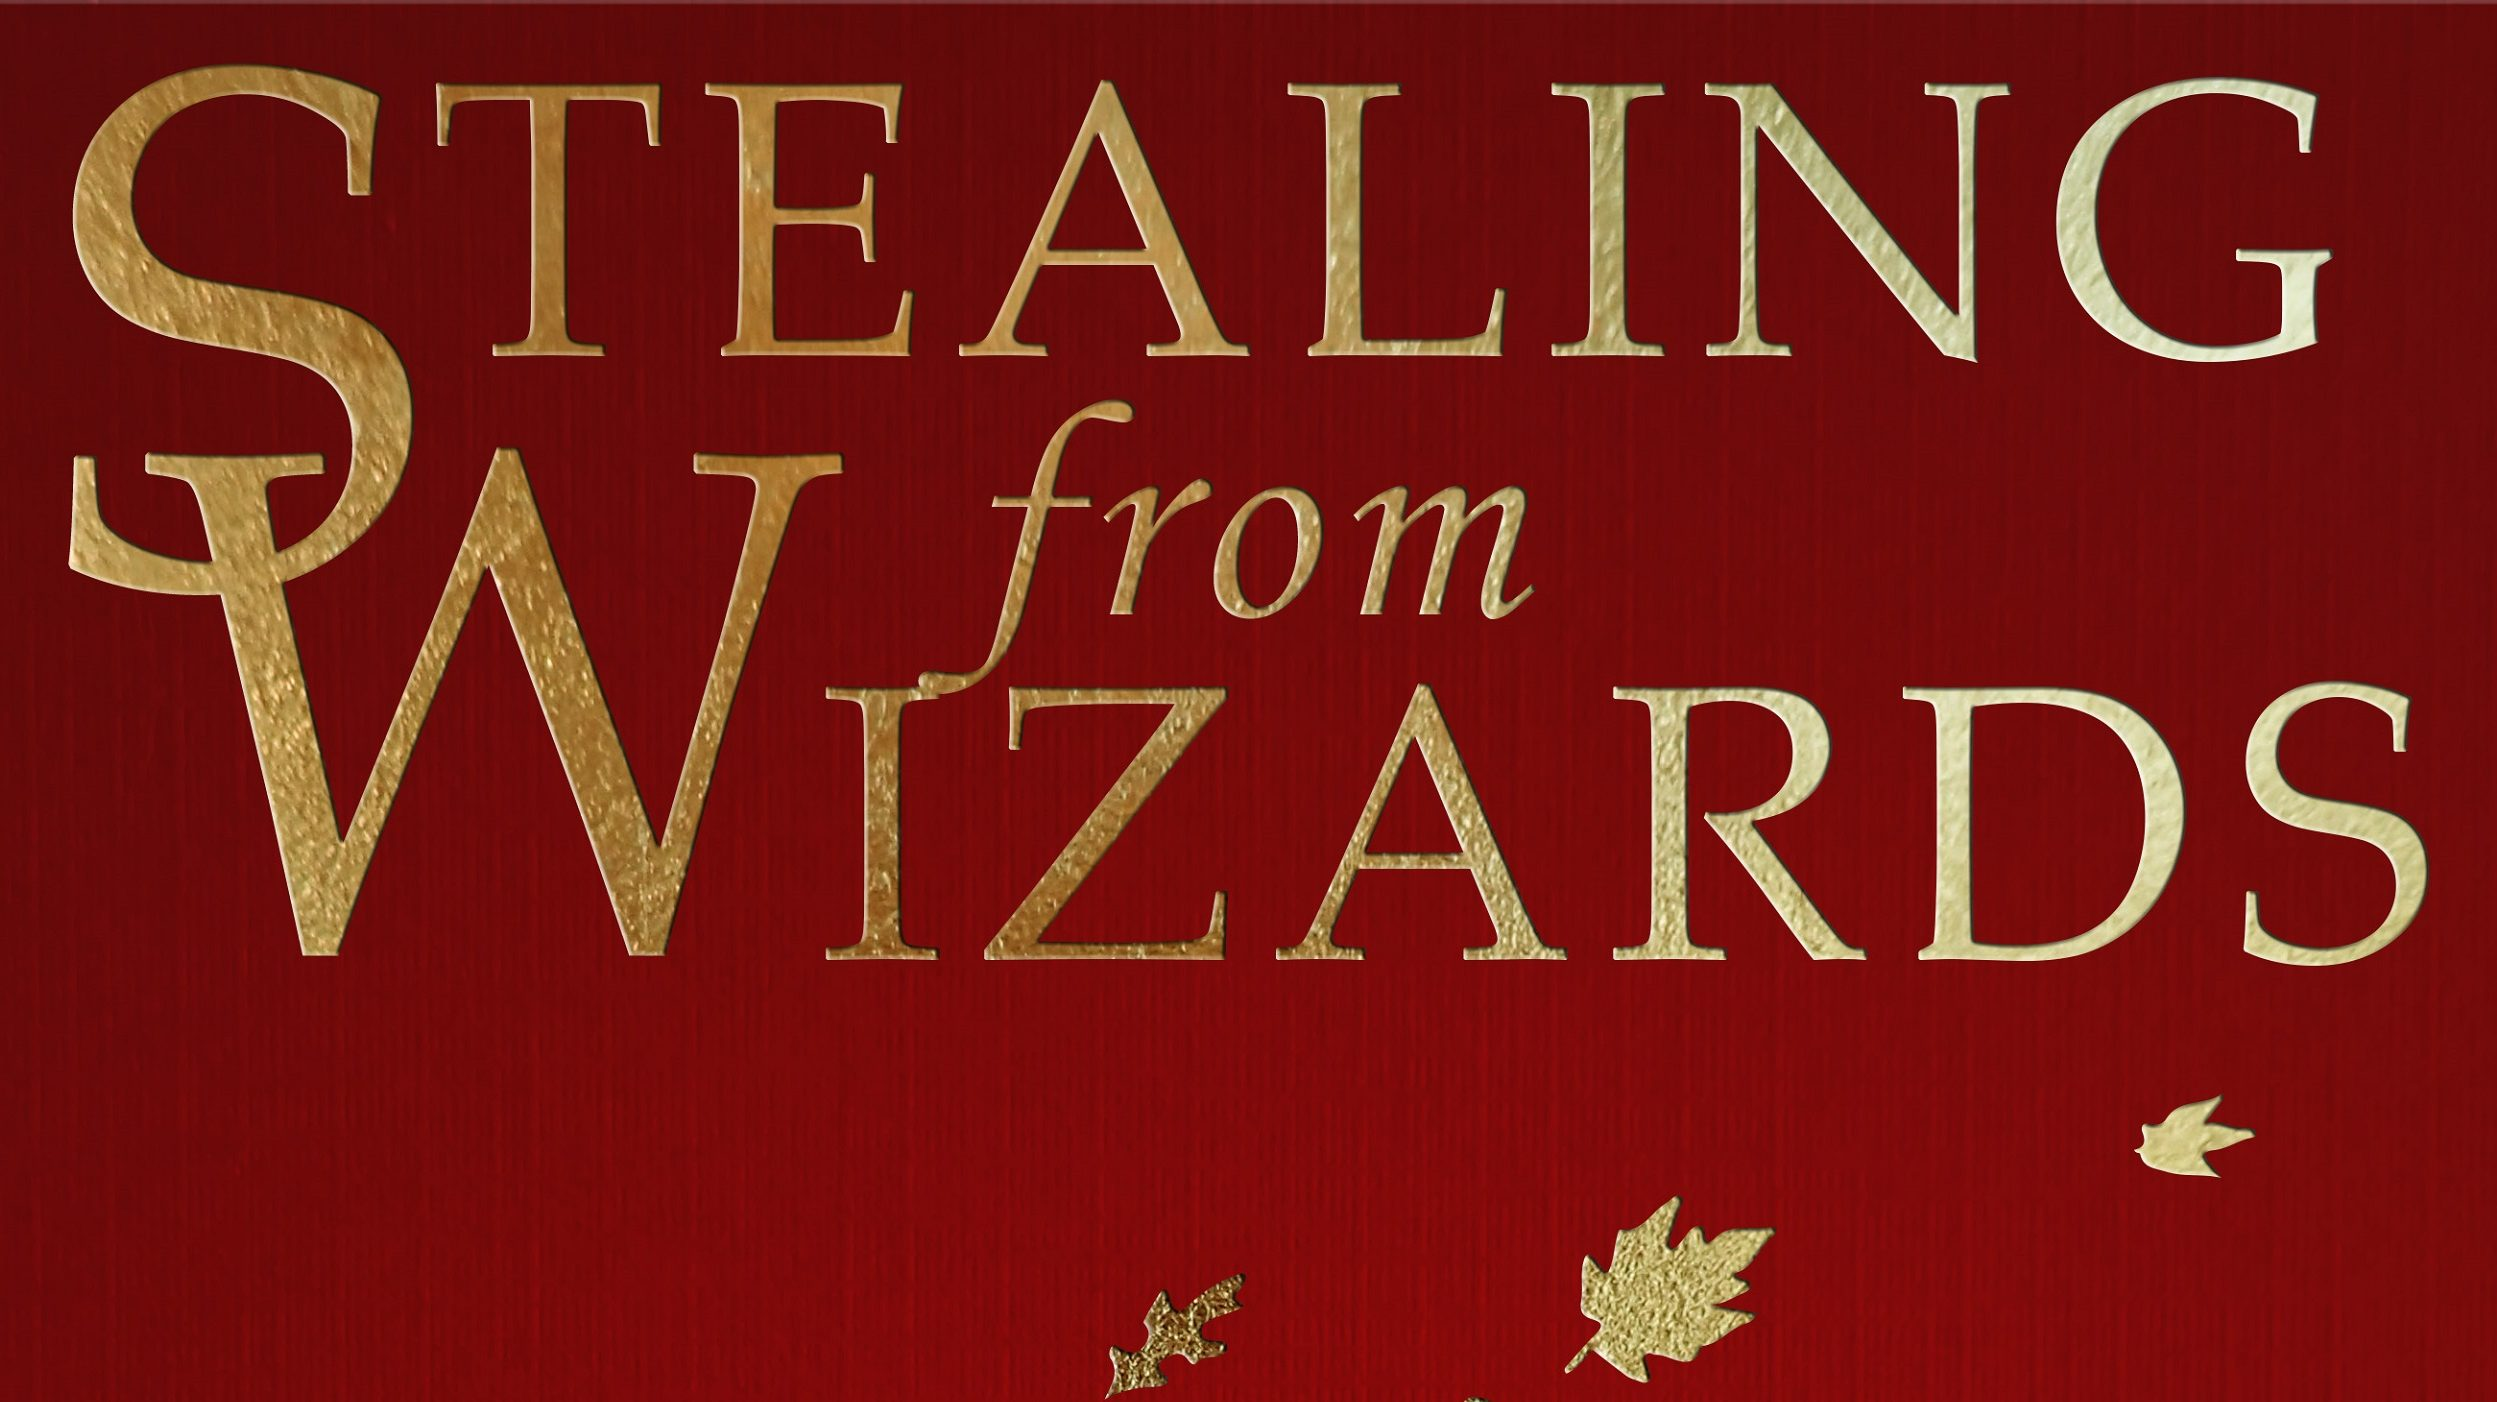 Stealing from Wizards now available!